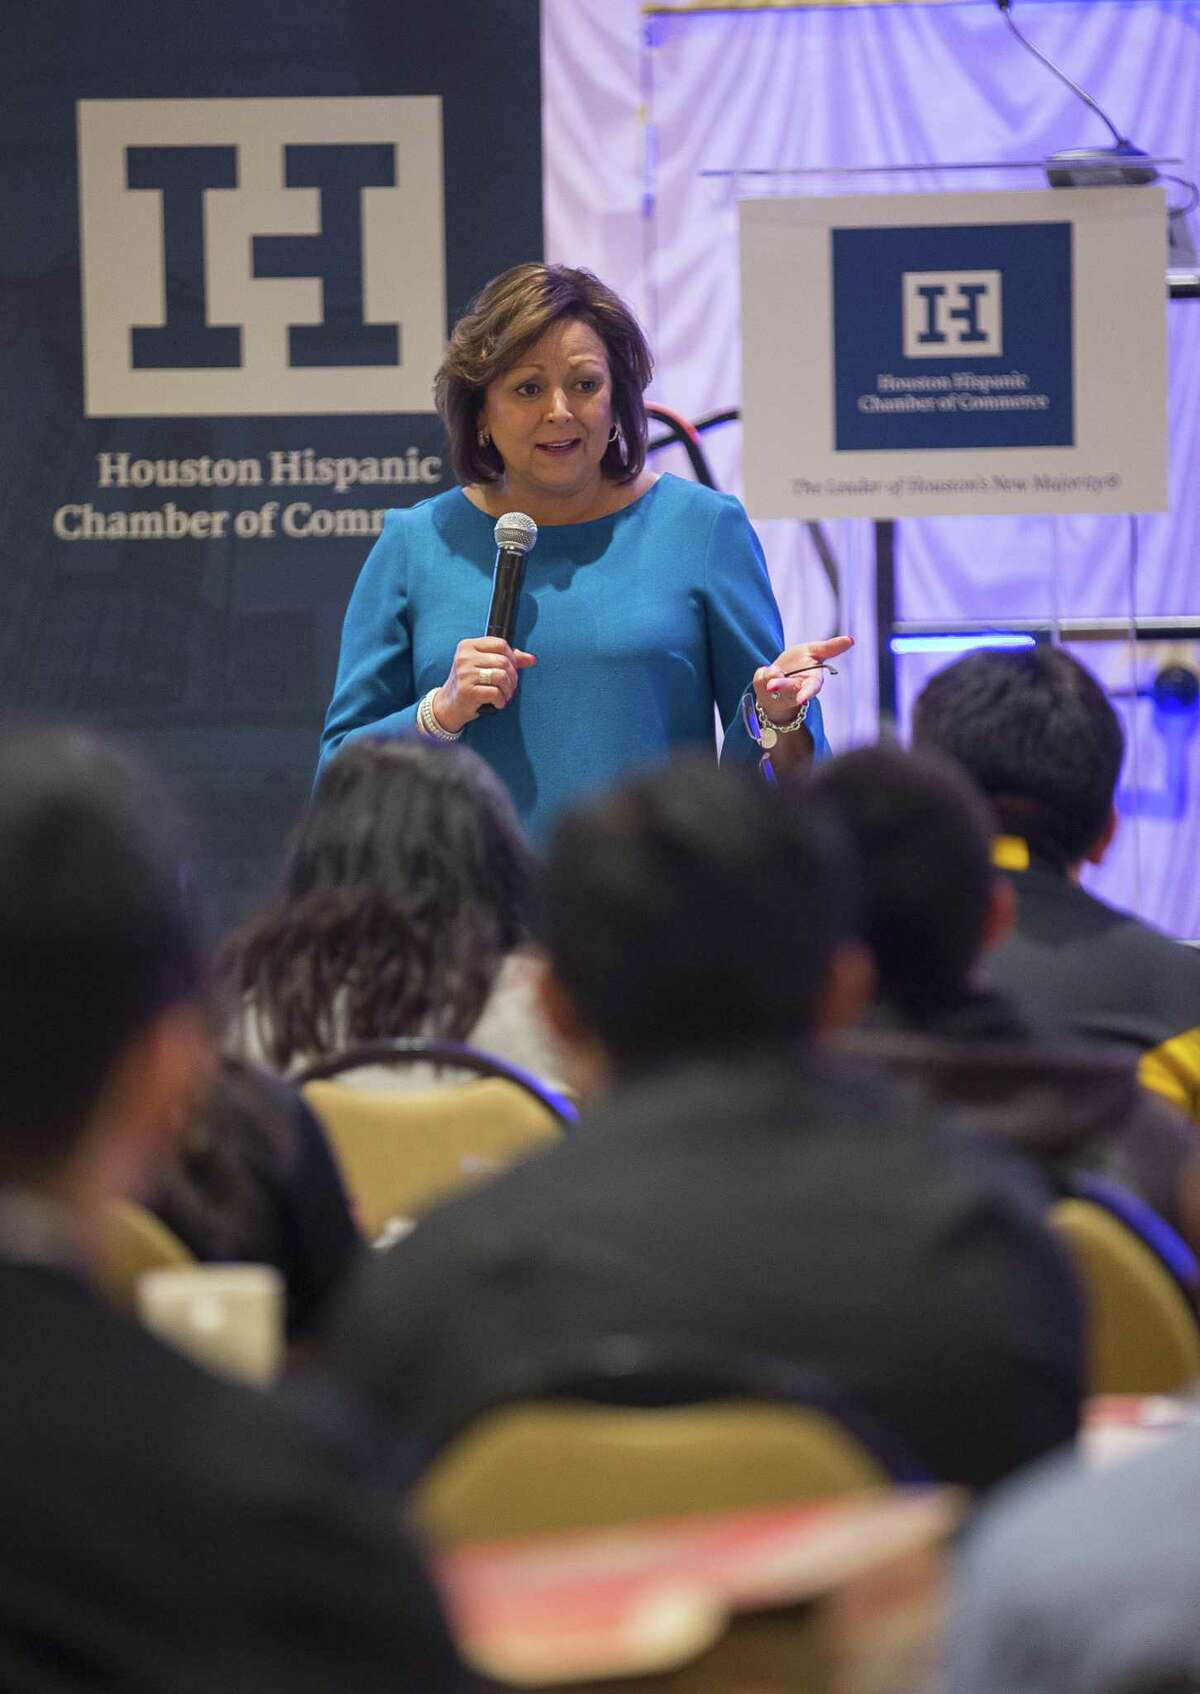 New Mexico Governor Susana Martinez speaks to Houston-area high school students during the Houston Hispanic Chamber of Commerce's Women?'s Leadership Conference & Business Expo, Thursday, March 15, 2018, in Houston. ( Mark Mulligan / Houston Chronicle )